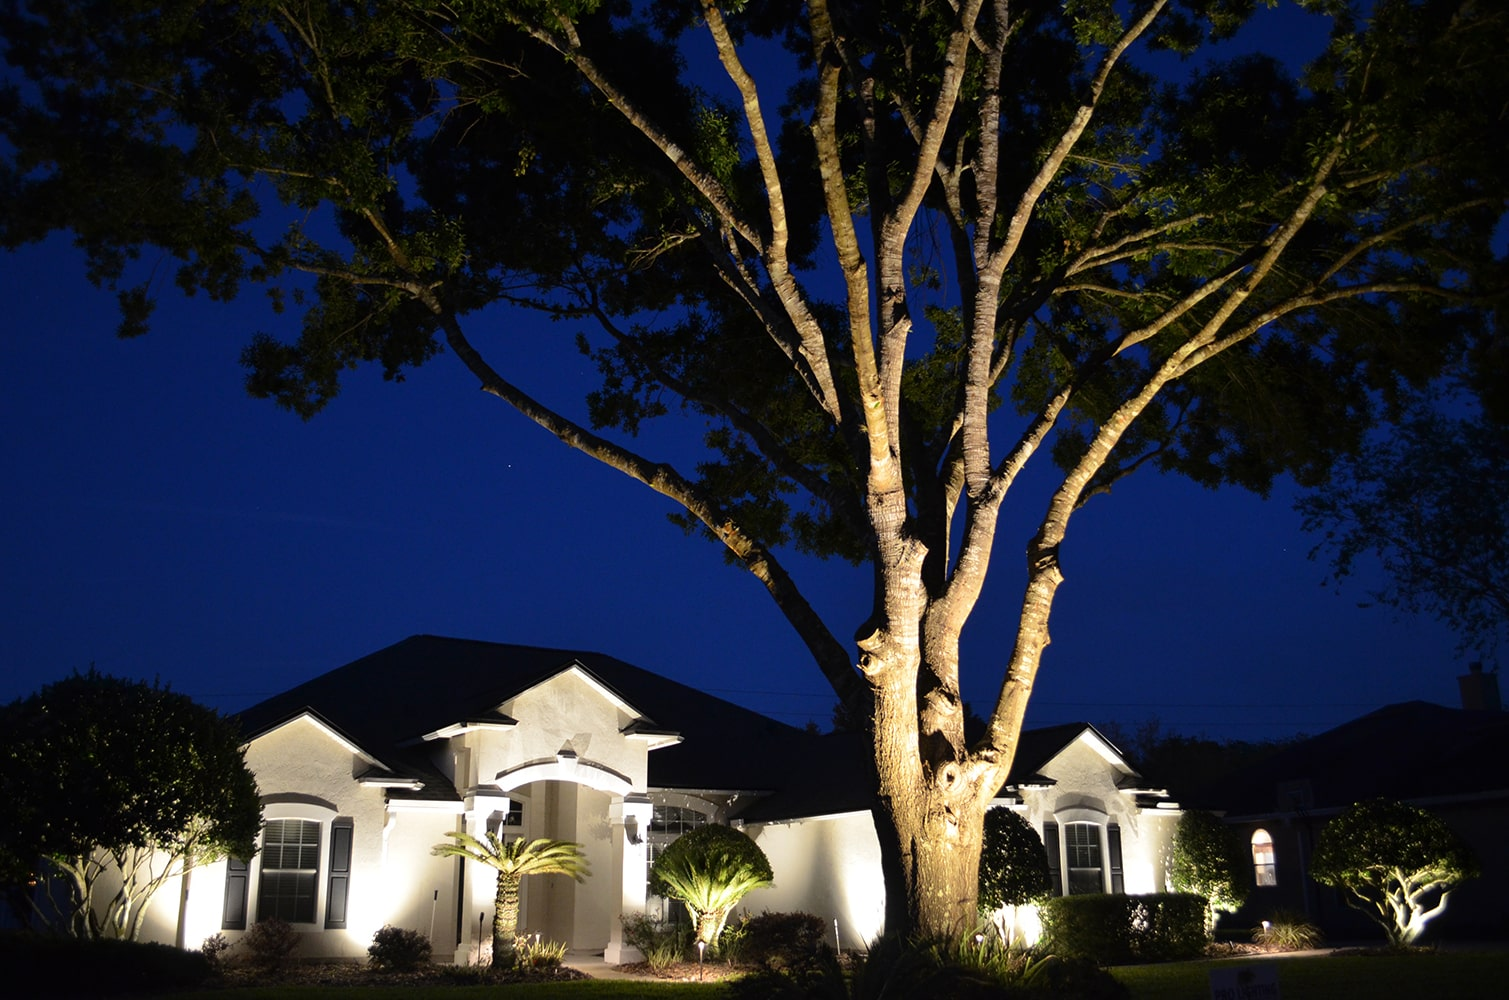 Exterior home lighting on house front and tree